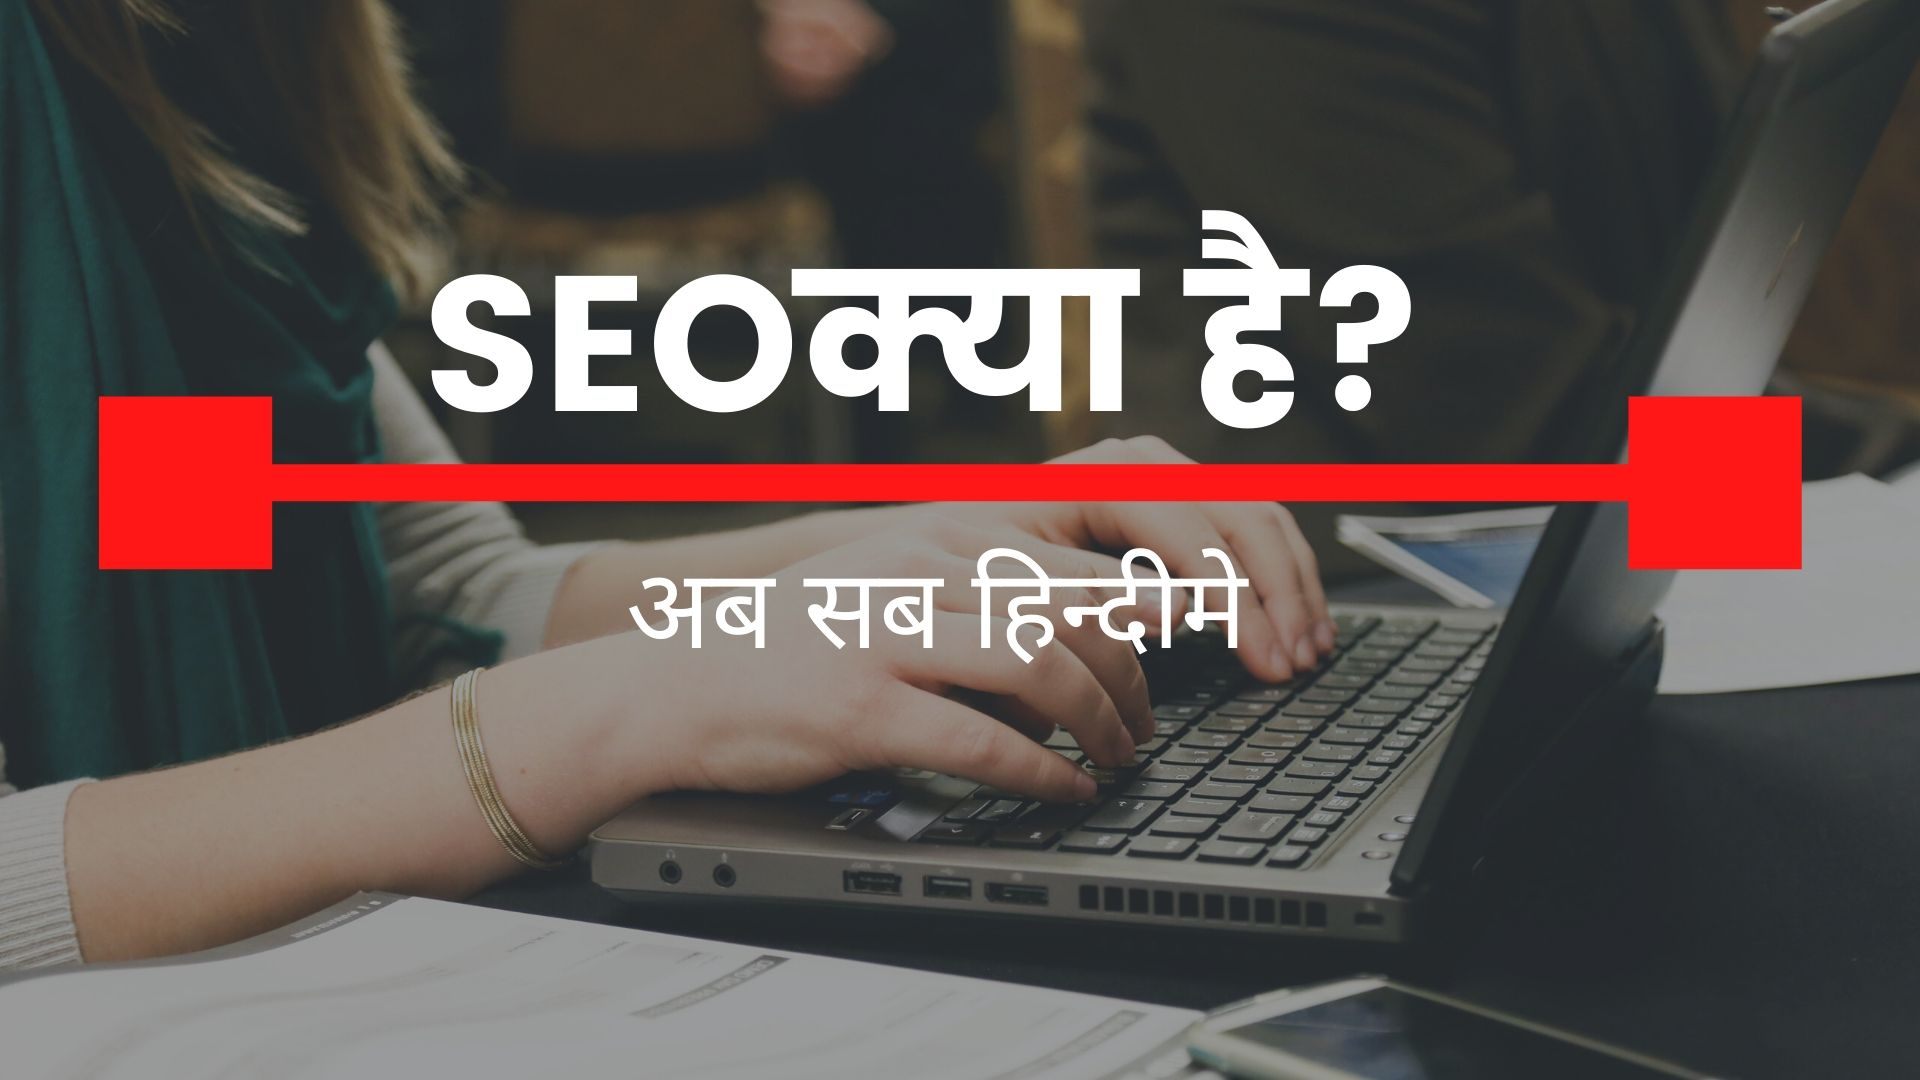 seo kya hai,search engine optimization kya hai